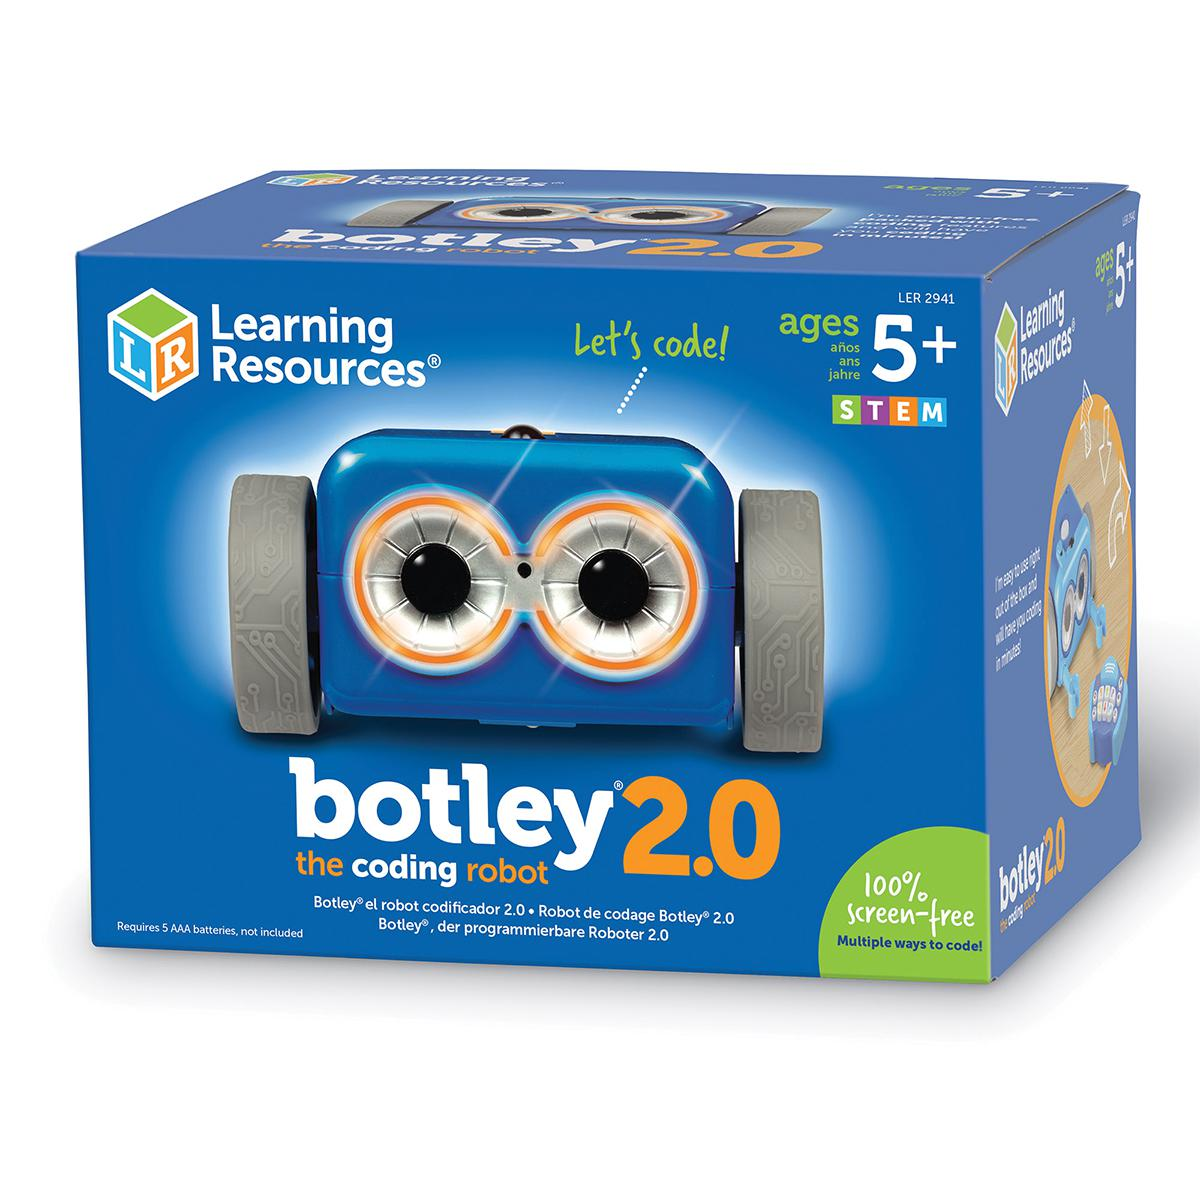 Botley® 2.0 The Coding Robot